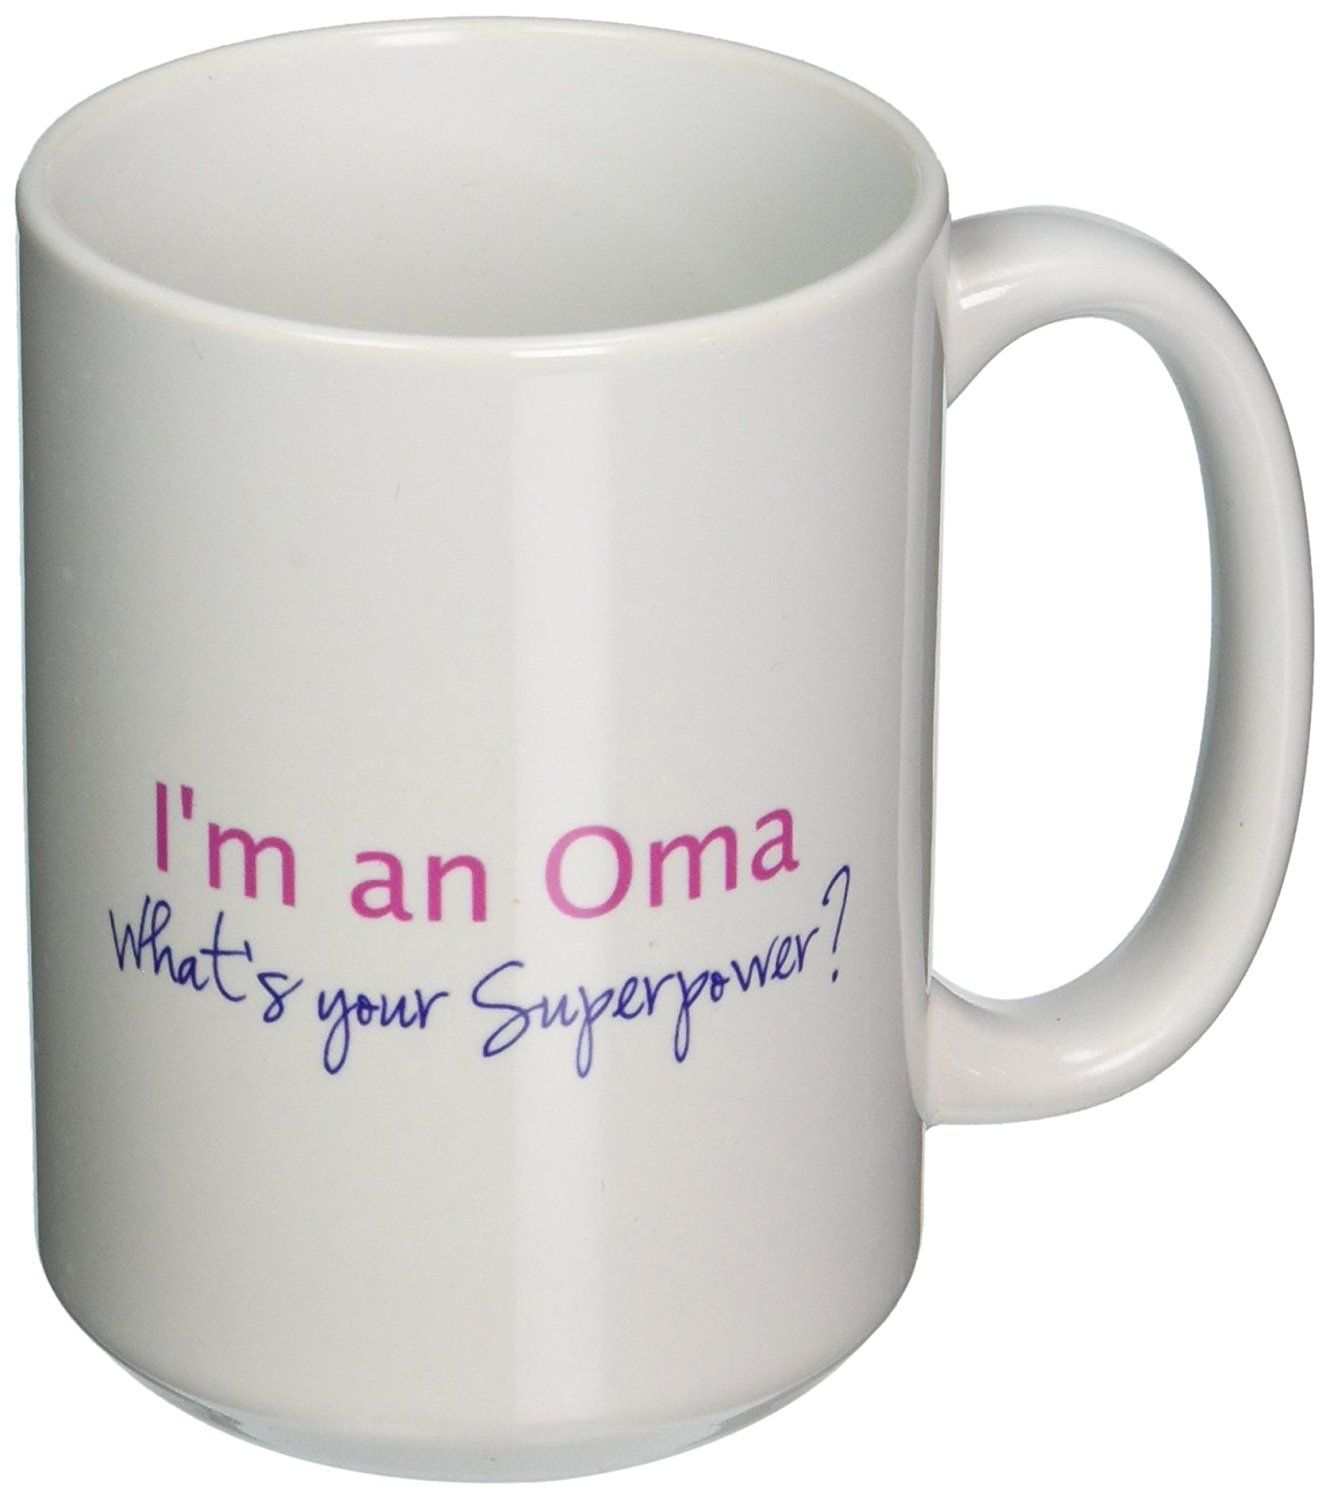 3drose Mug 2 Im An Oma Whats Your Superpower Hot